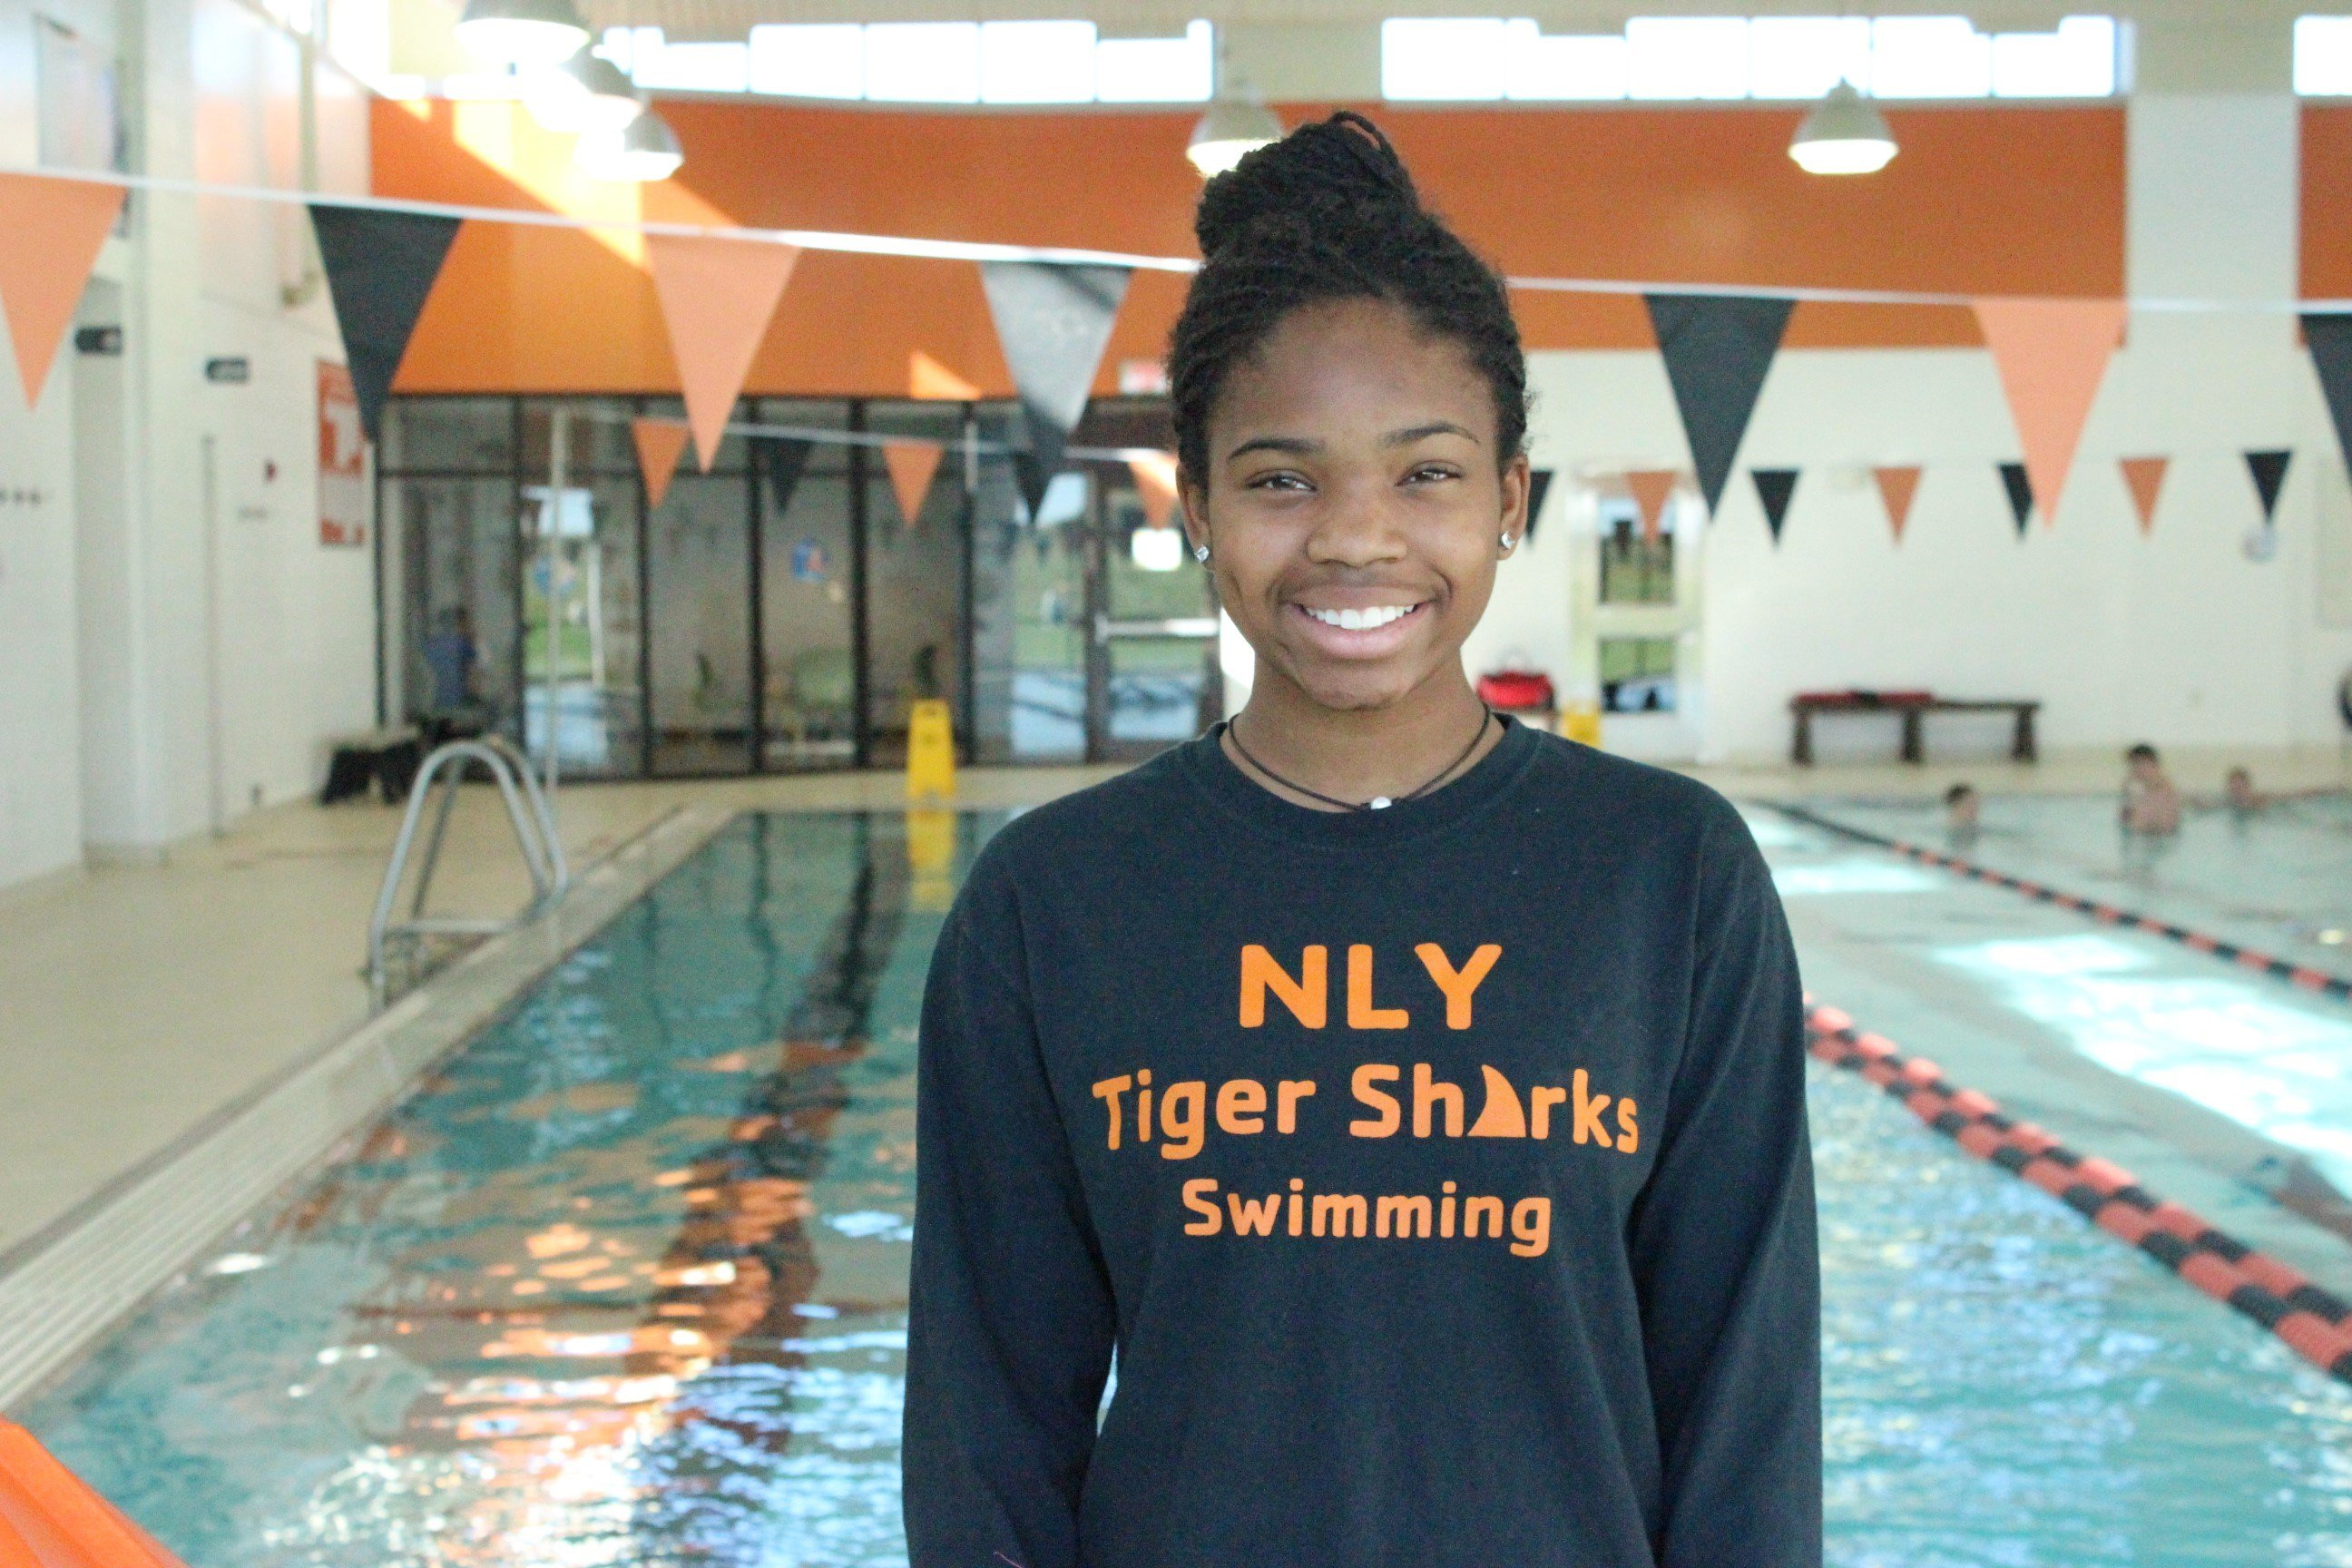 Champions of Change - Amina.El.Amin, YMCA Swimmer